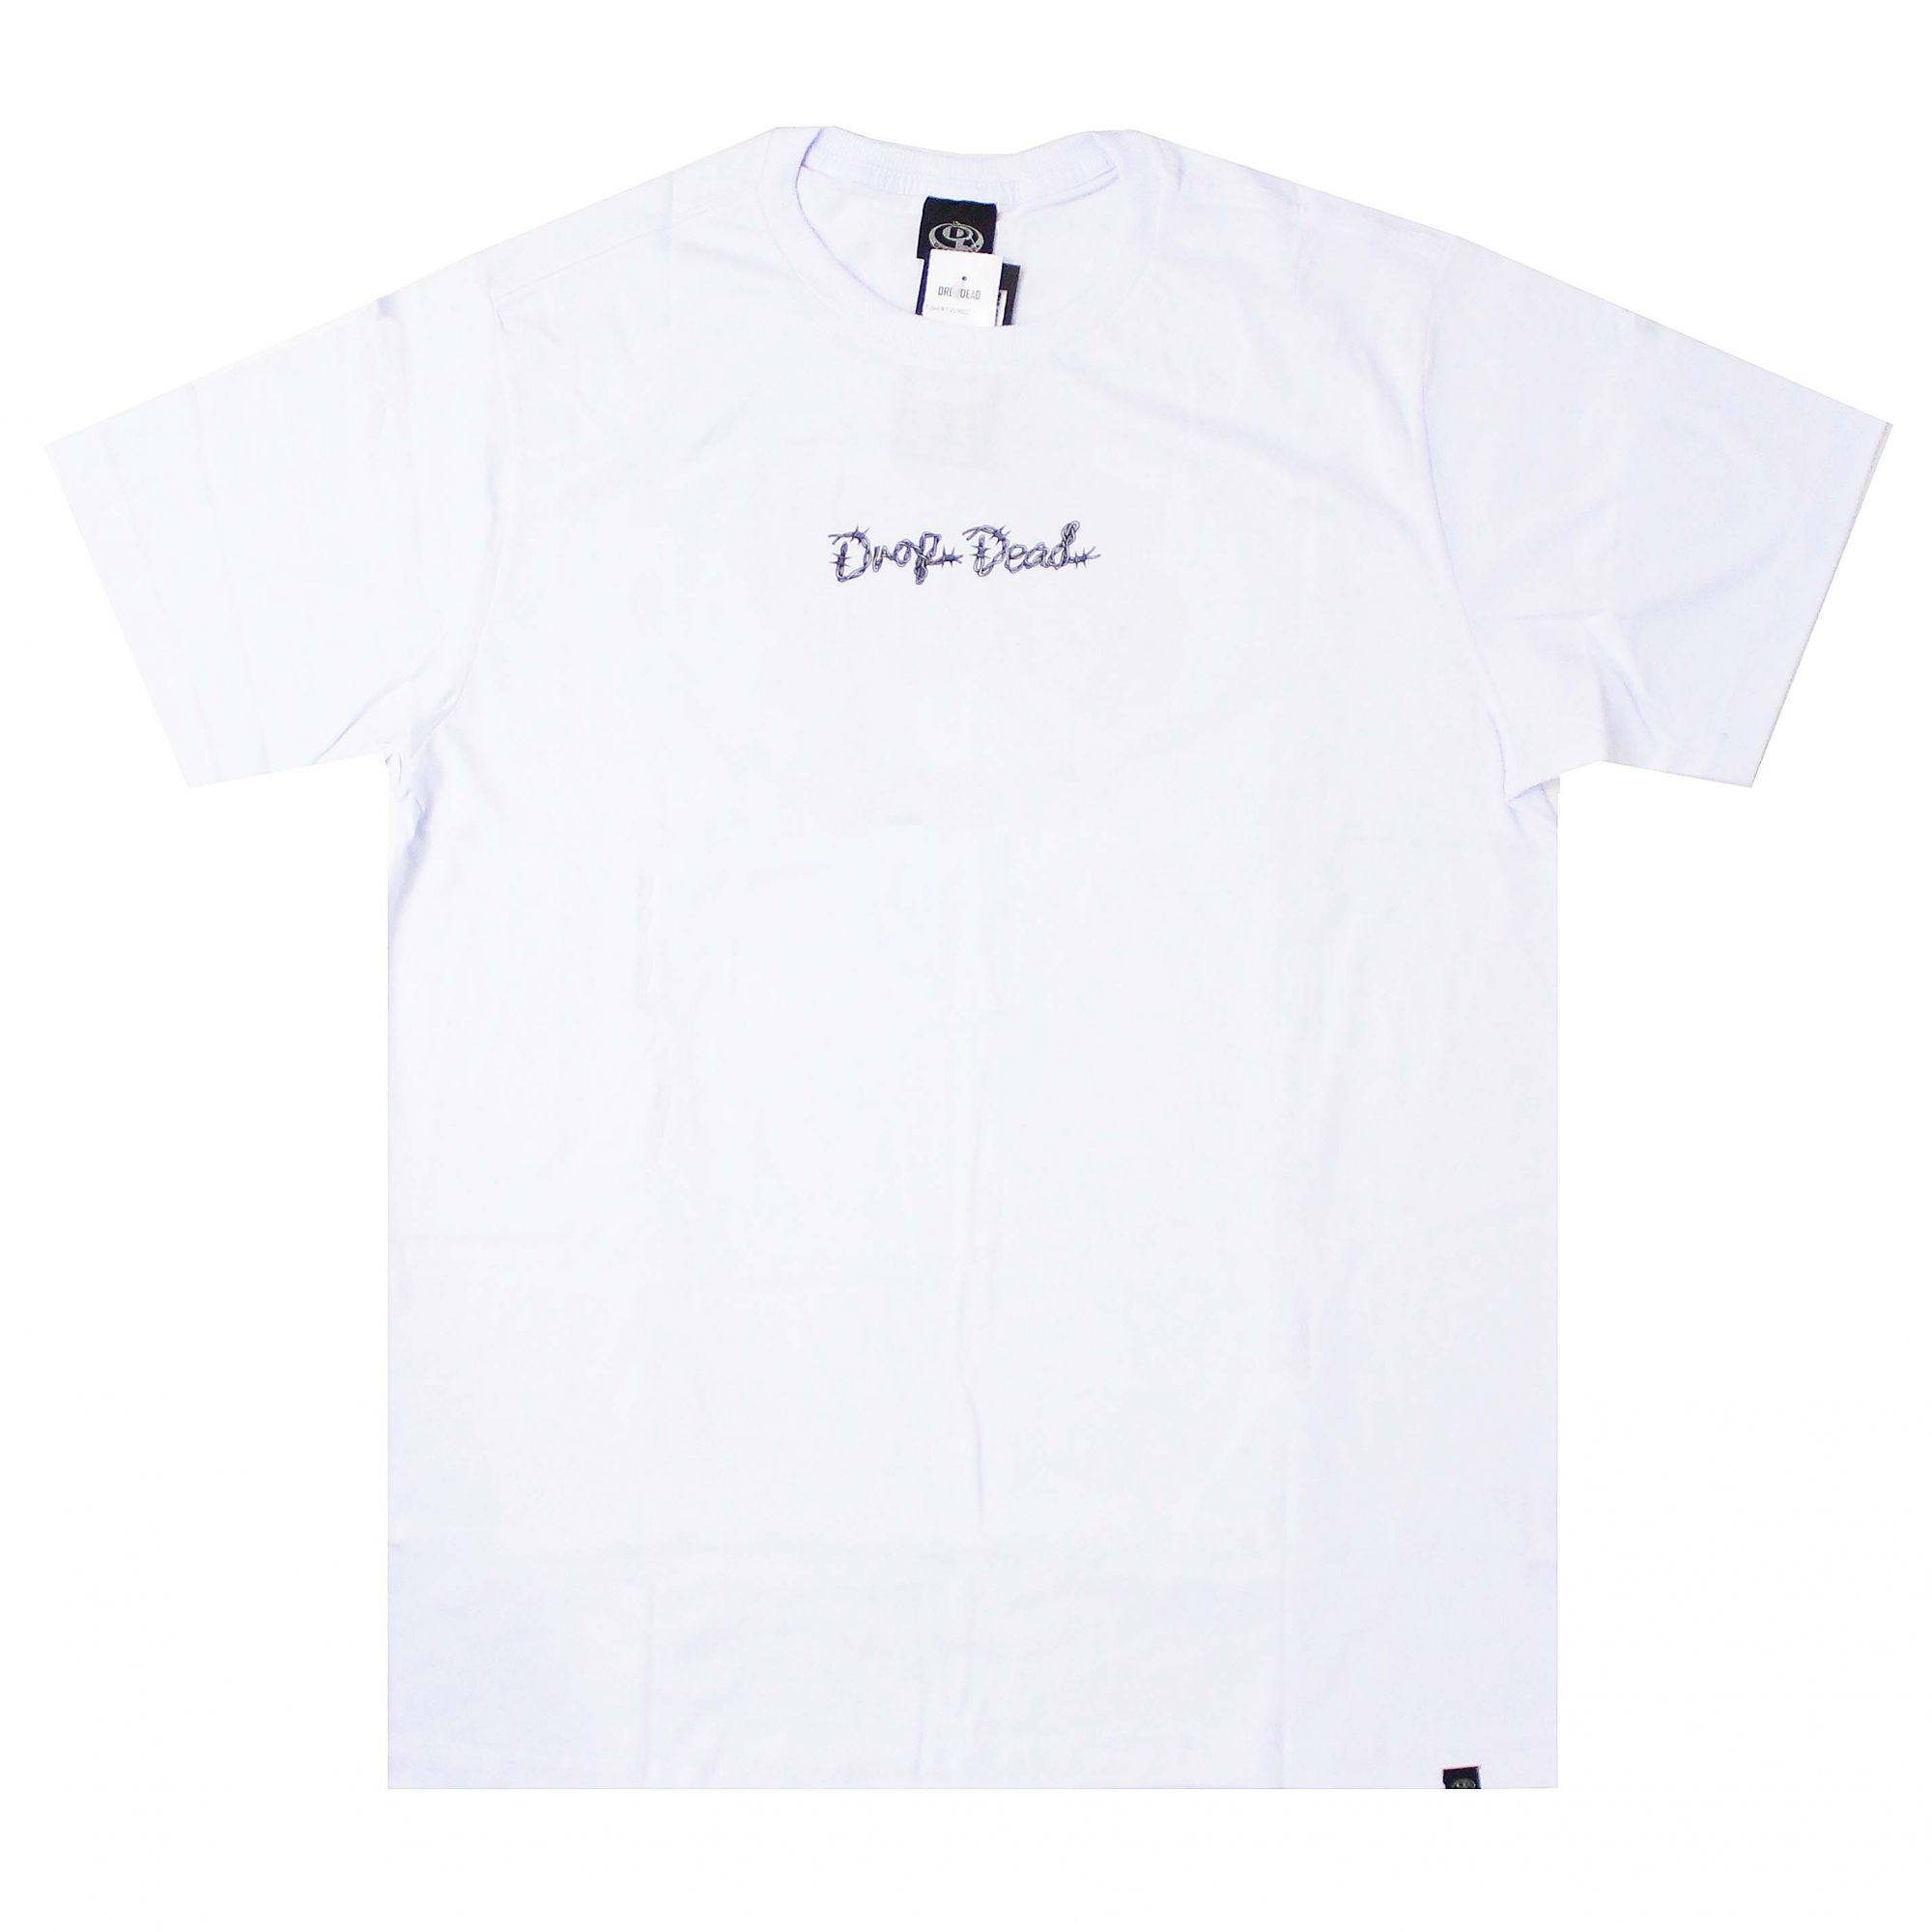 Camiseta Drop Dead Wired Branco